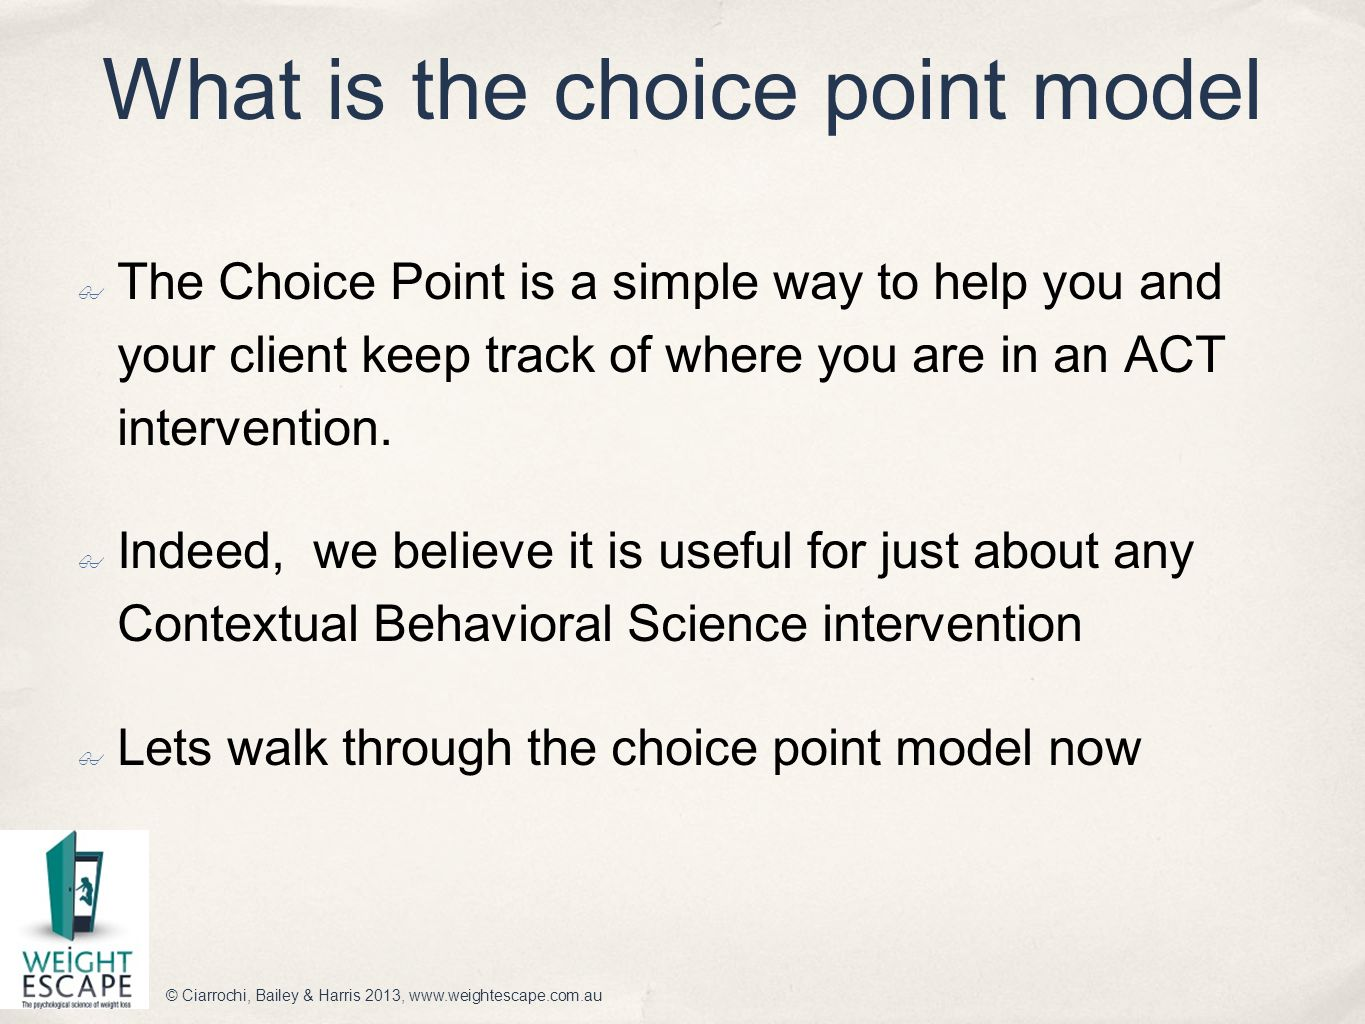 What is the choice point model